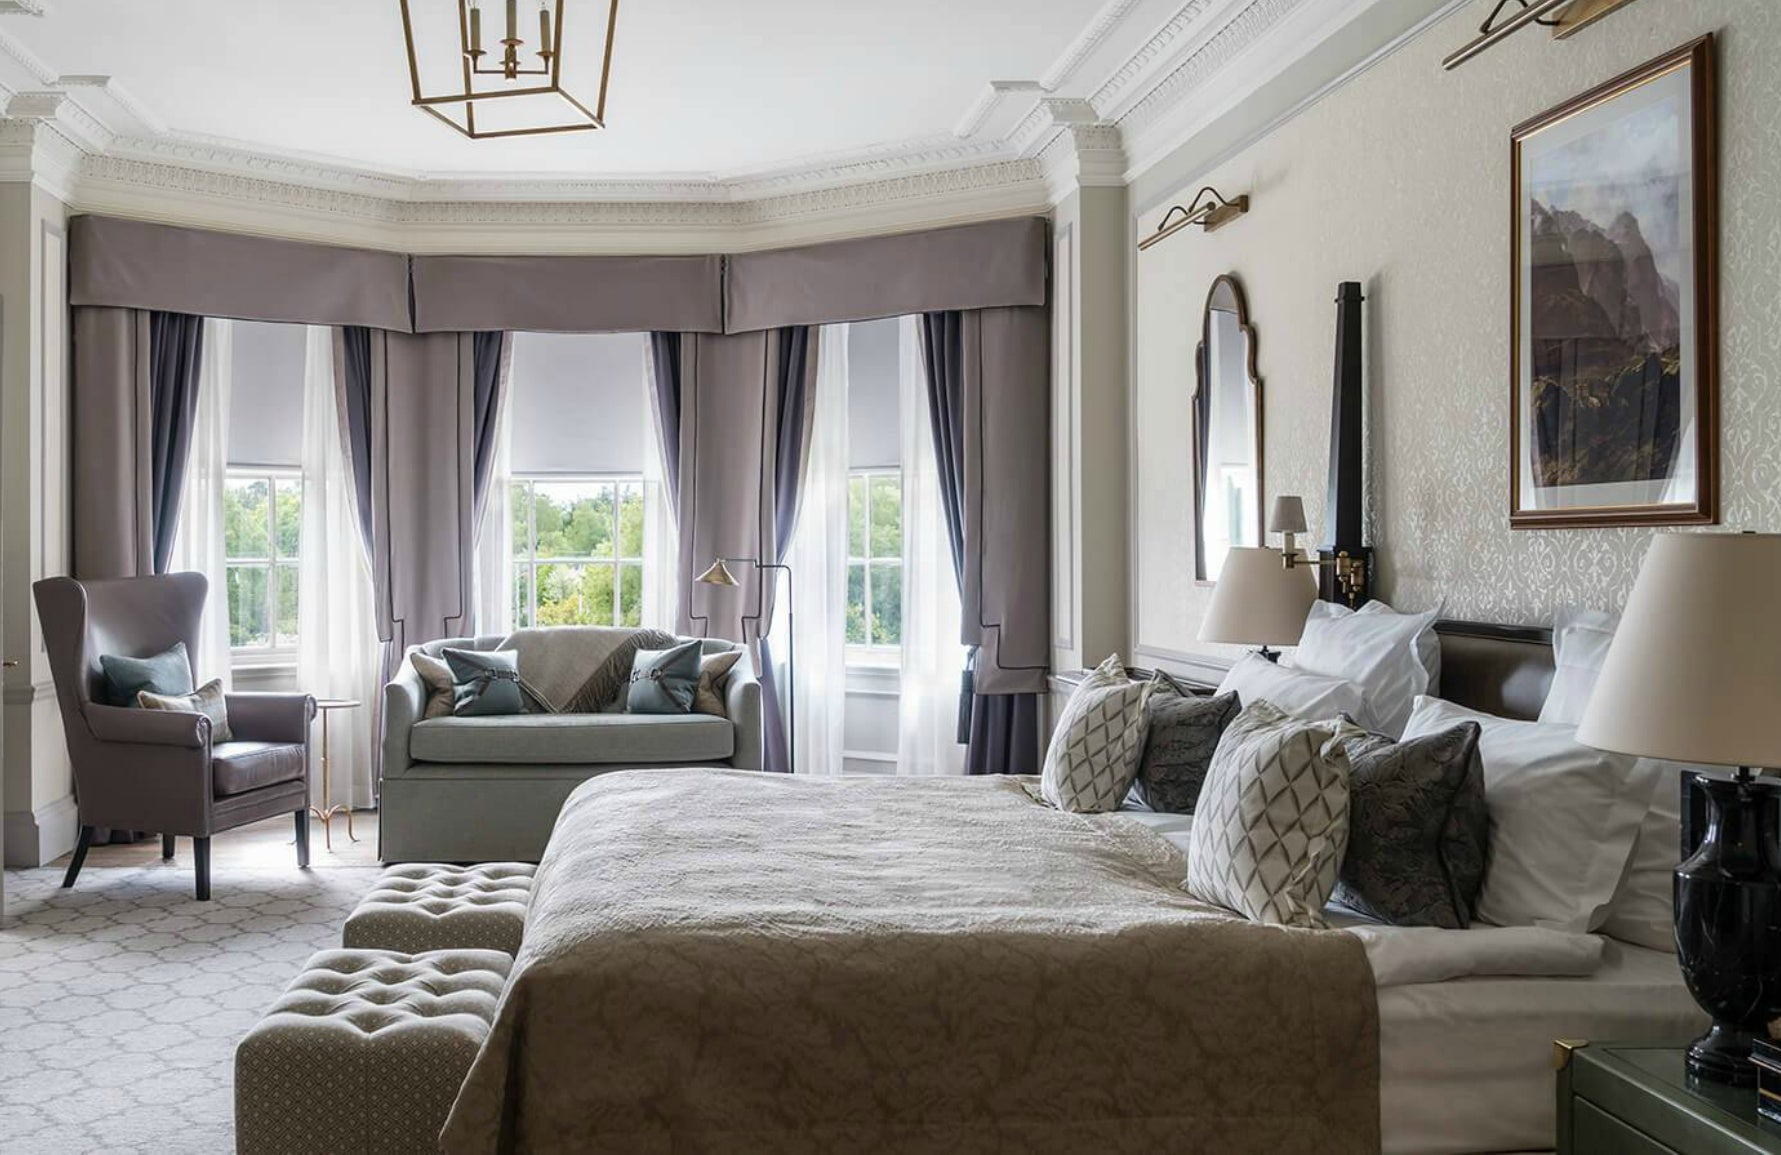 Top Country Hotels for the Bank Holiday Weekend   Gleneagles   LuxDeco.com